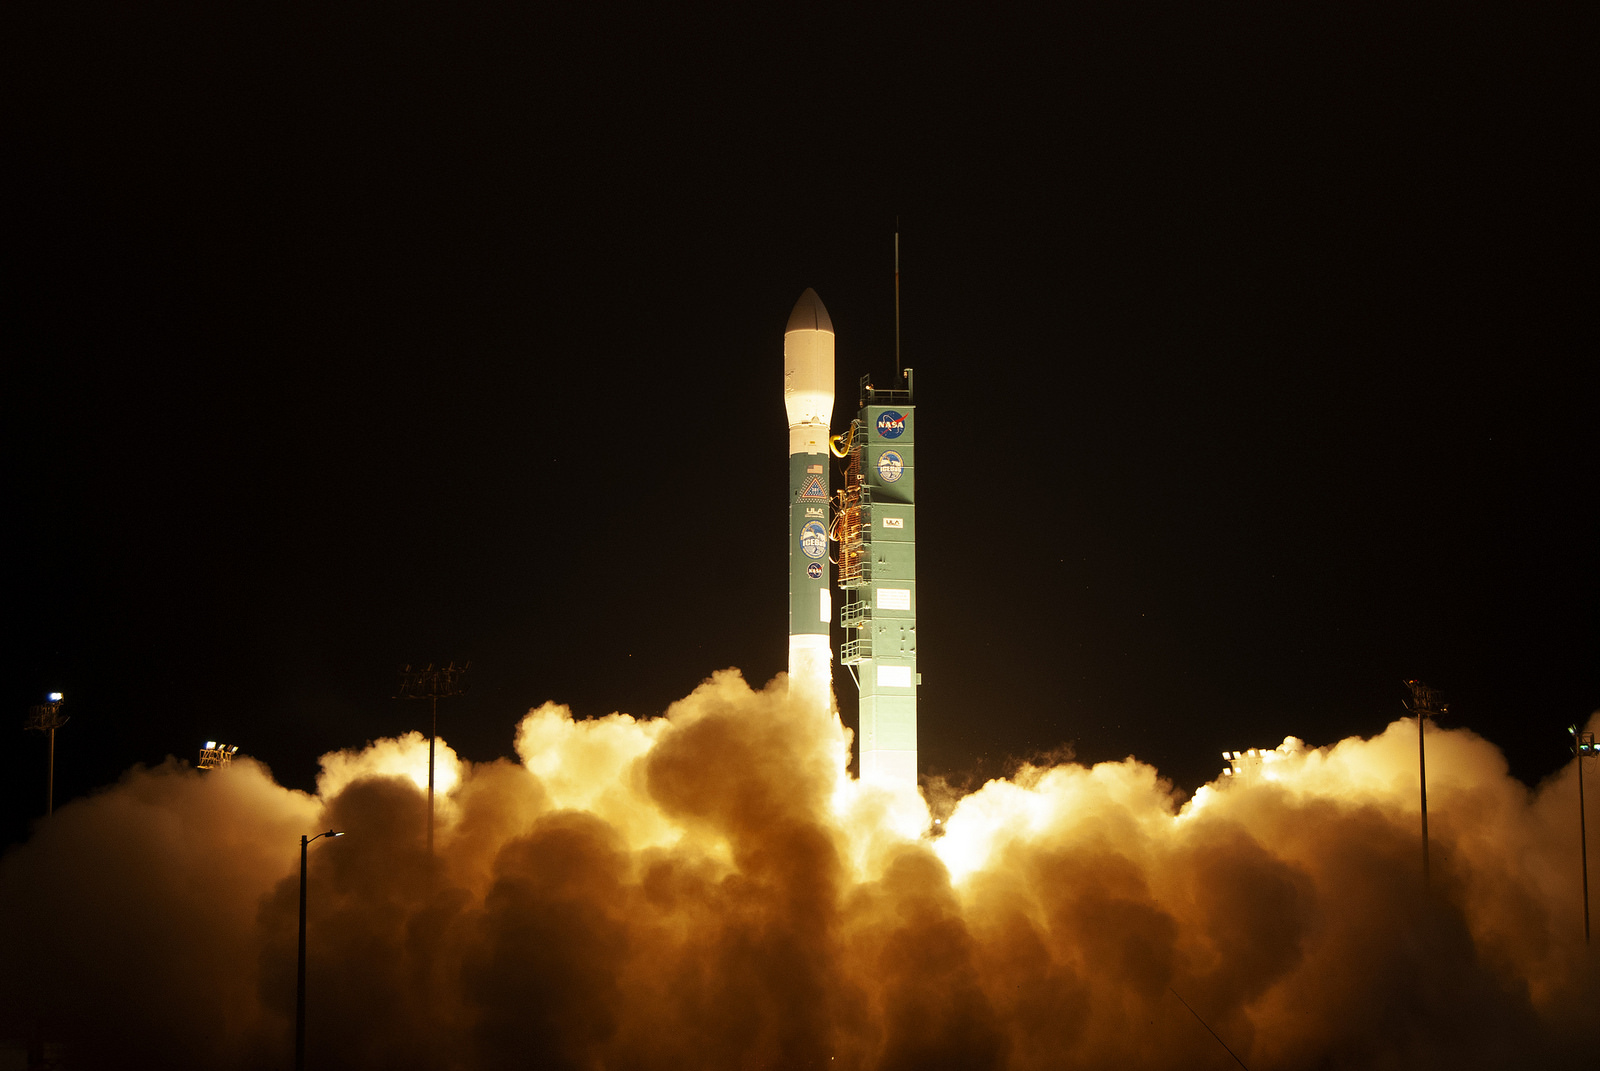 The final United Launch Alliance Delta II rocket lifts off from Space Launch Complex 2 at Vandenberg Air Force Base in California, on Sept. 15, 2018, carrying NASA's Ice, Cloud and land Elevation Satellite-2 (ICESat-2). Liftoff was at 9:02 a.m. EDT (6:02 a.m. PDT).